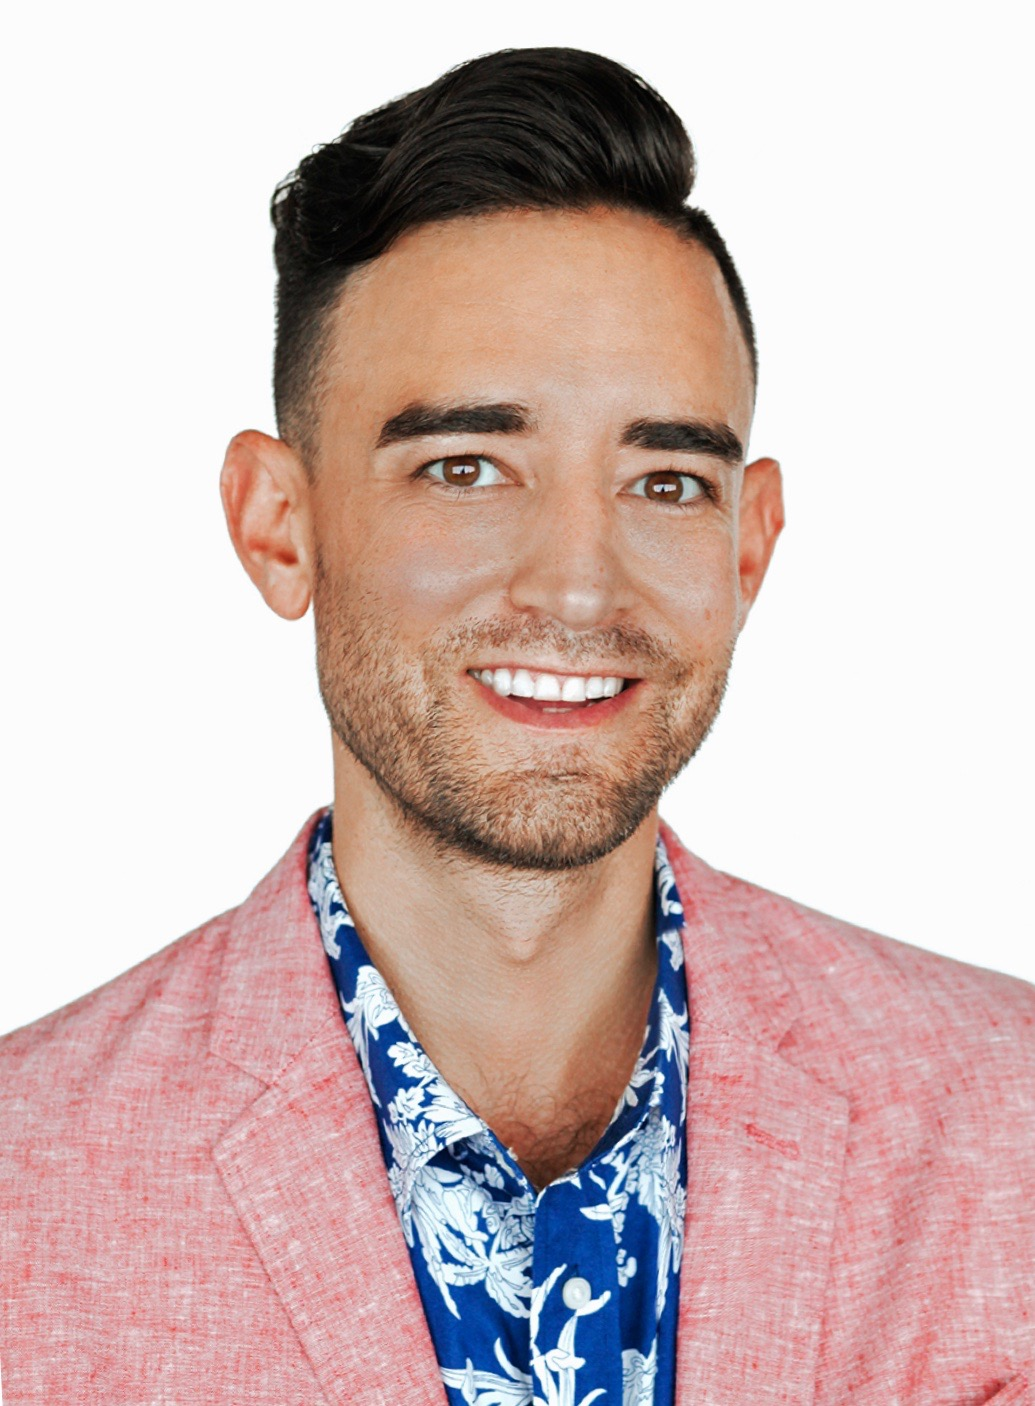 I'm Robert - I understand how quickly these industries change and how much work it takes a business to evolve alongside them. With my finger on the pulse of the latest industry trends, I have a 360-degree view of the landscape which allows me to leverage solutions from other fields and spaces.To learn more click below